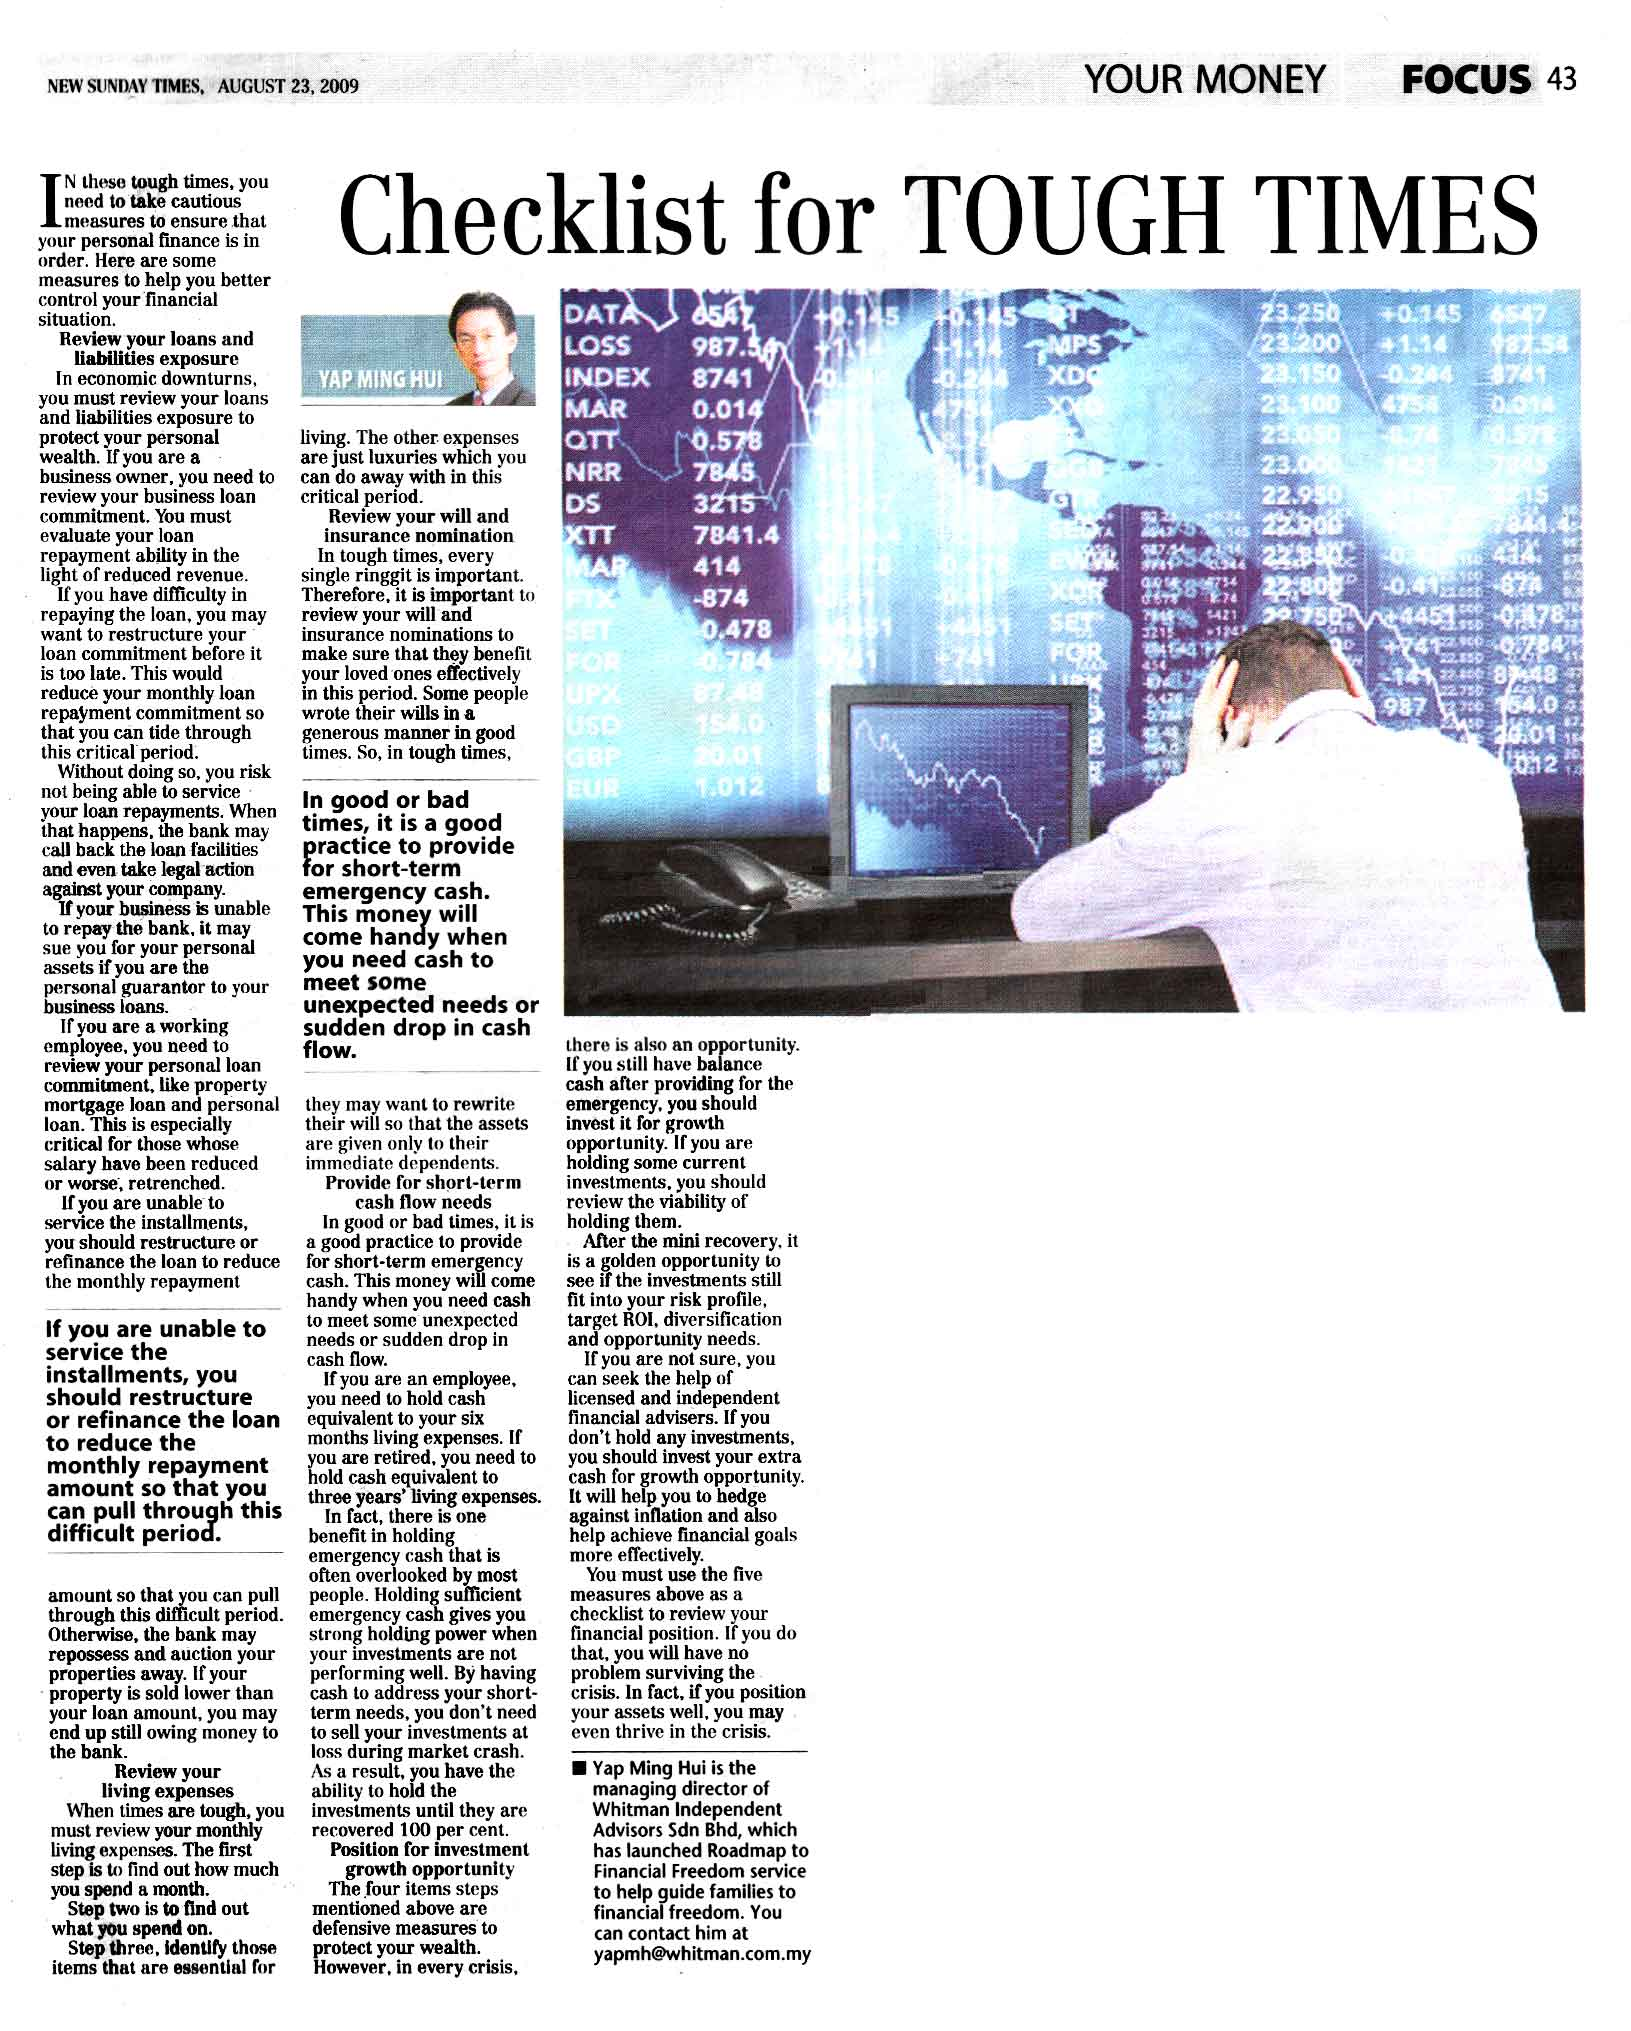 Checklist for tough times (New Sunday Times) - 23 Aug 2009